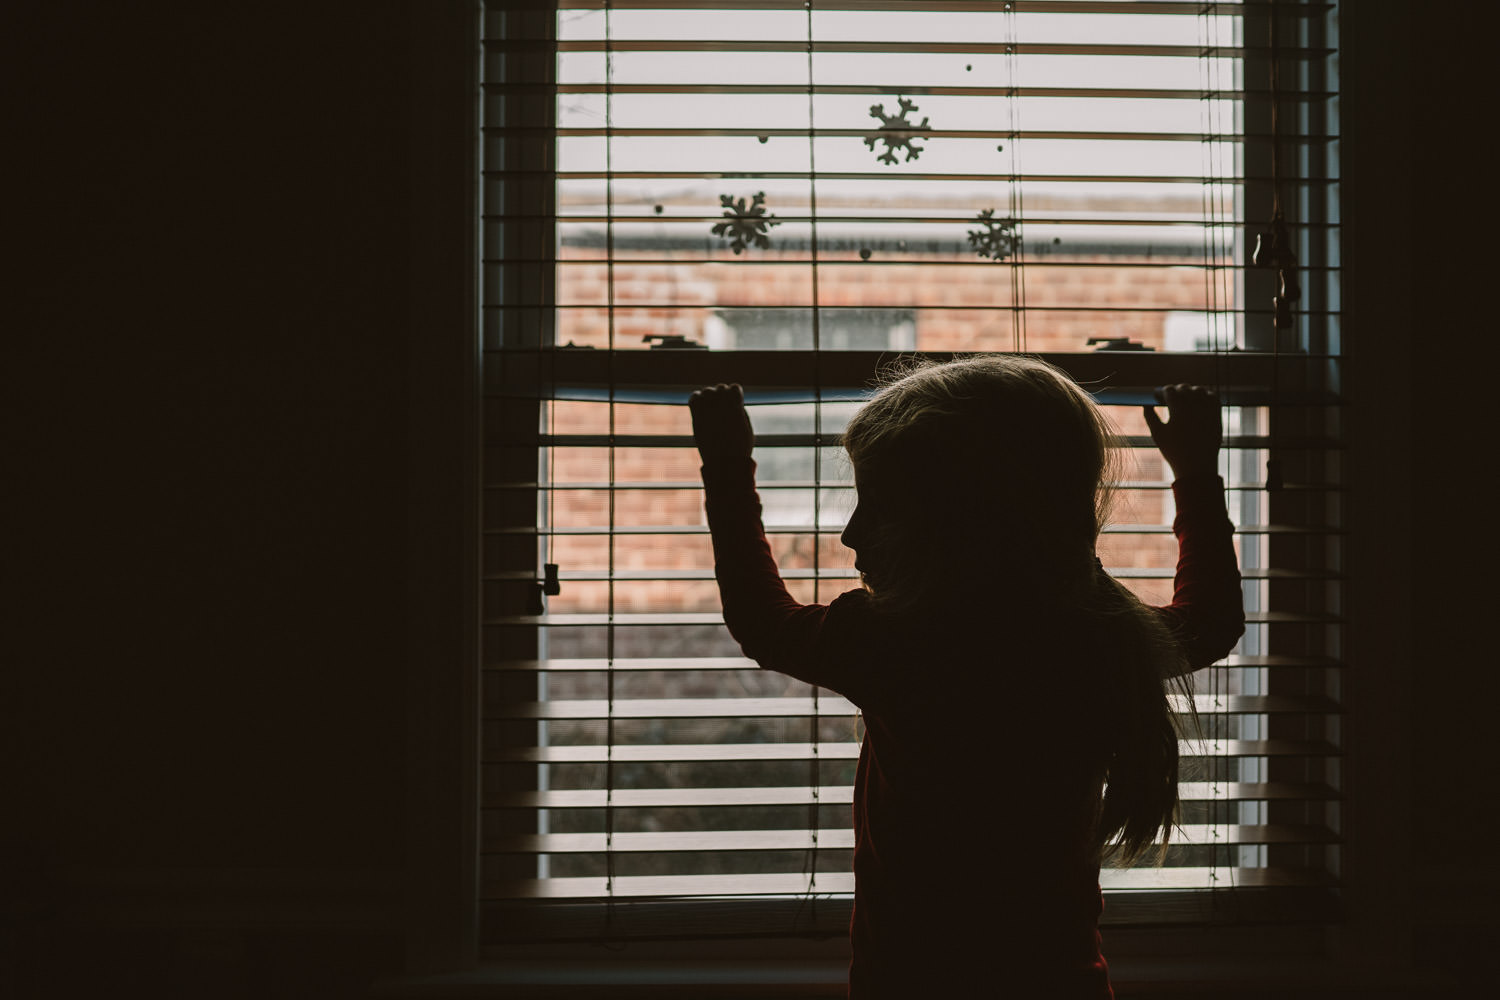 A silhouette of a little girl standing in front of a window with blinds.